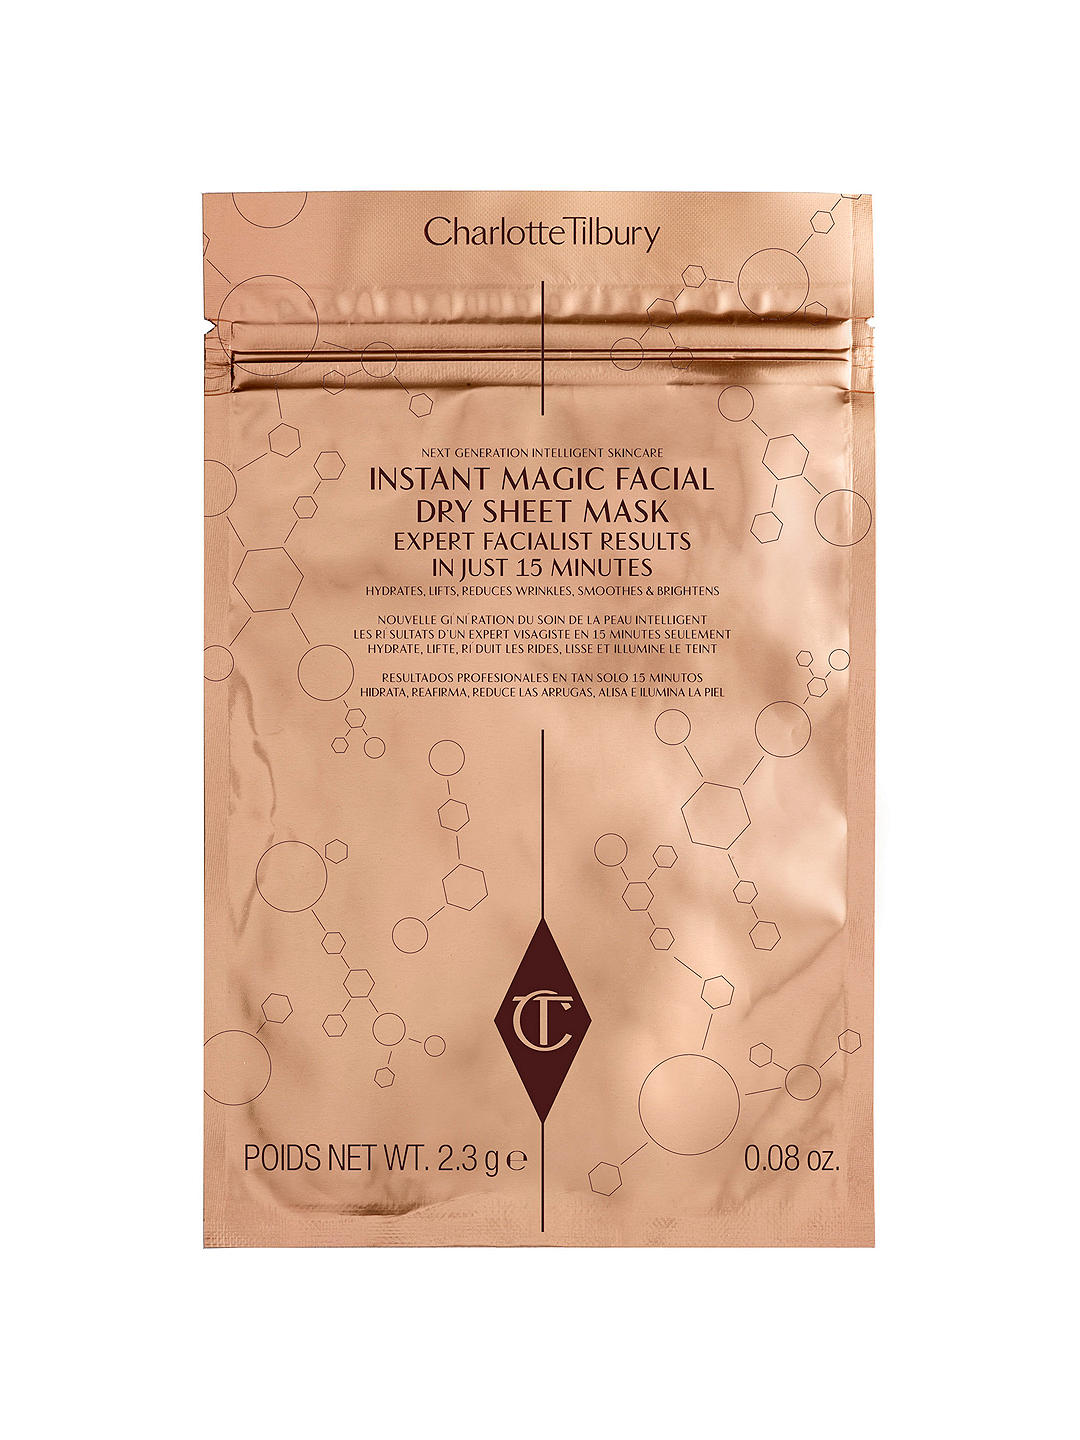 Charlotte Tilbury Instant Magic Facial Dry Sheet Mask x 1, Face mask, London Loves Beauty